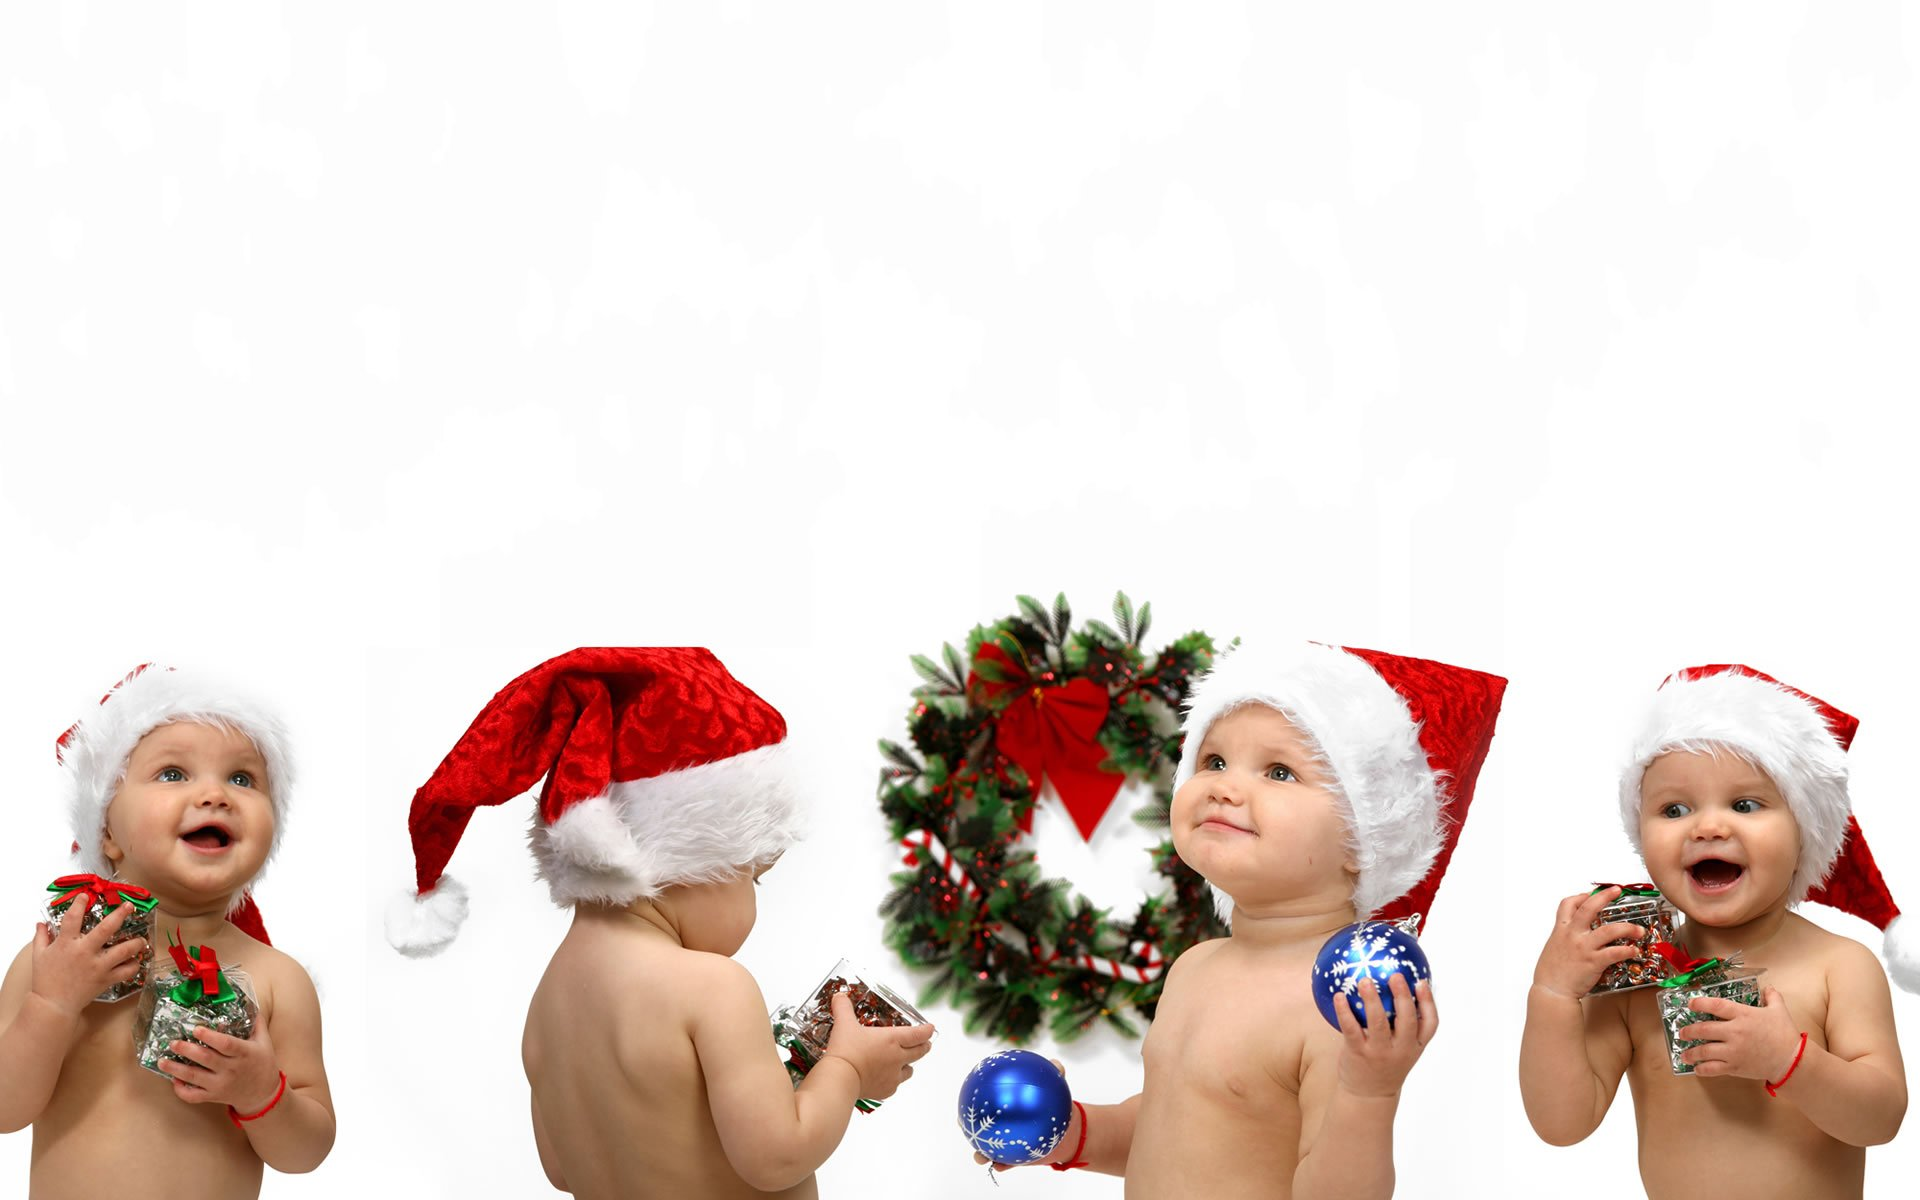 Christmas Baby Images Hd.Christmas Babies Hd Wallpaper Background Image 1920x1200